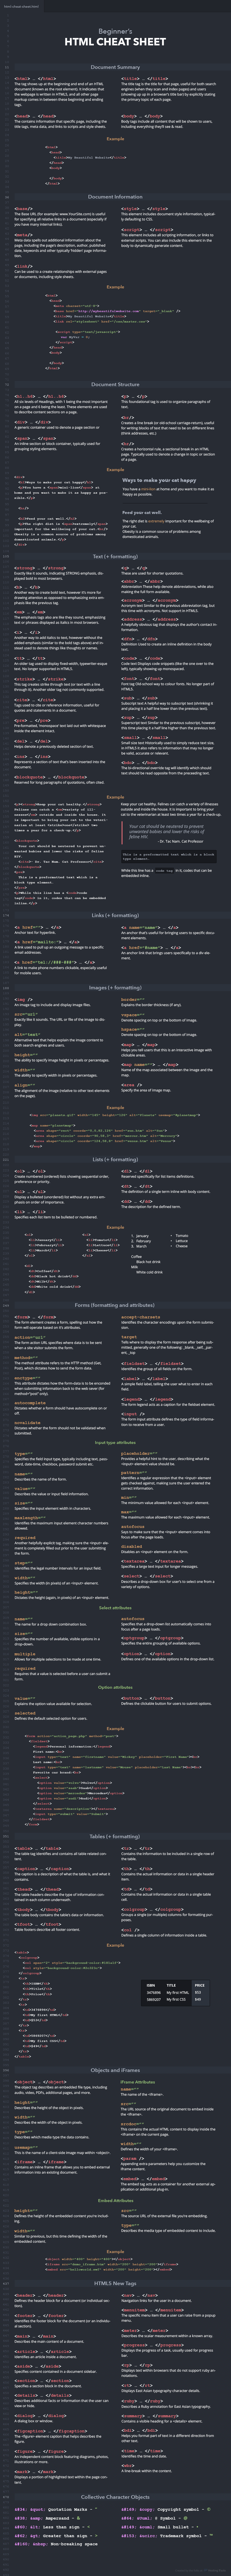 Cheat Sheet : All Cheat Sheets in one page